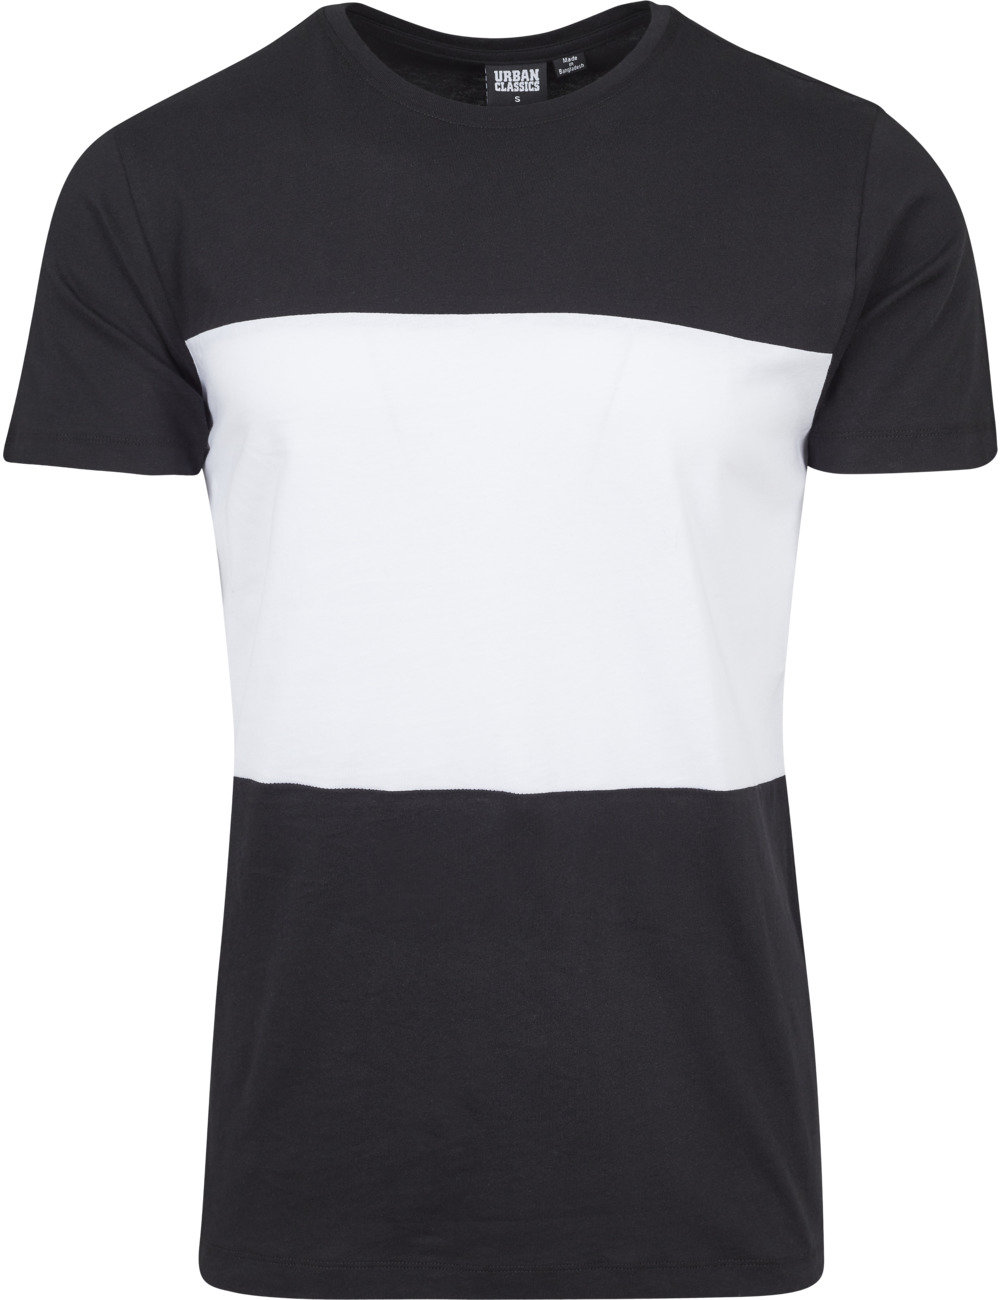 urban-classics-herren-t-shirt-contrast-panel-regular-fit